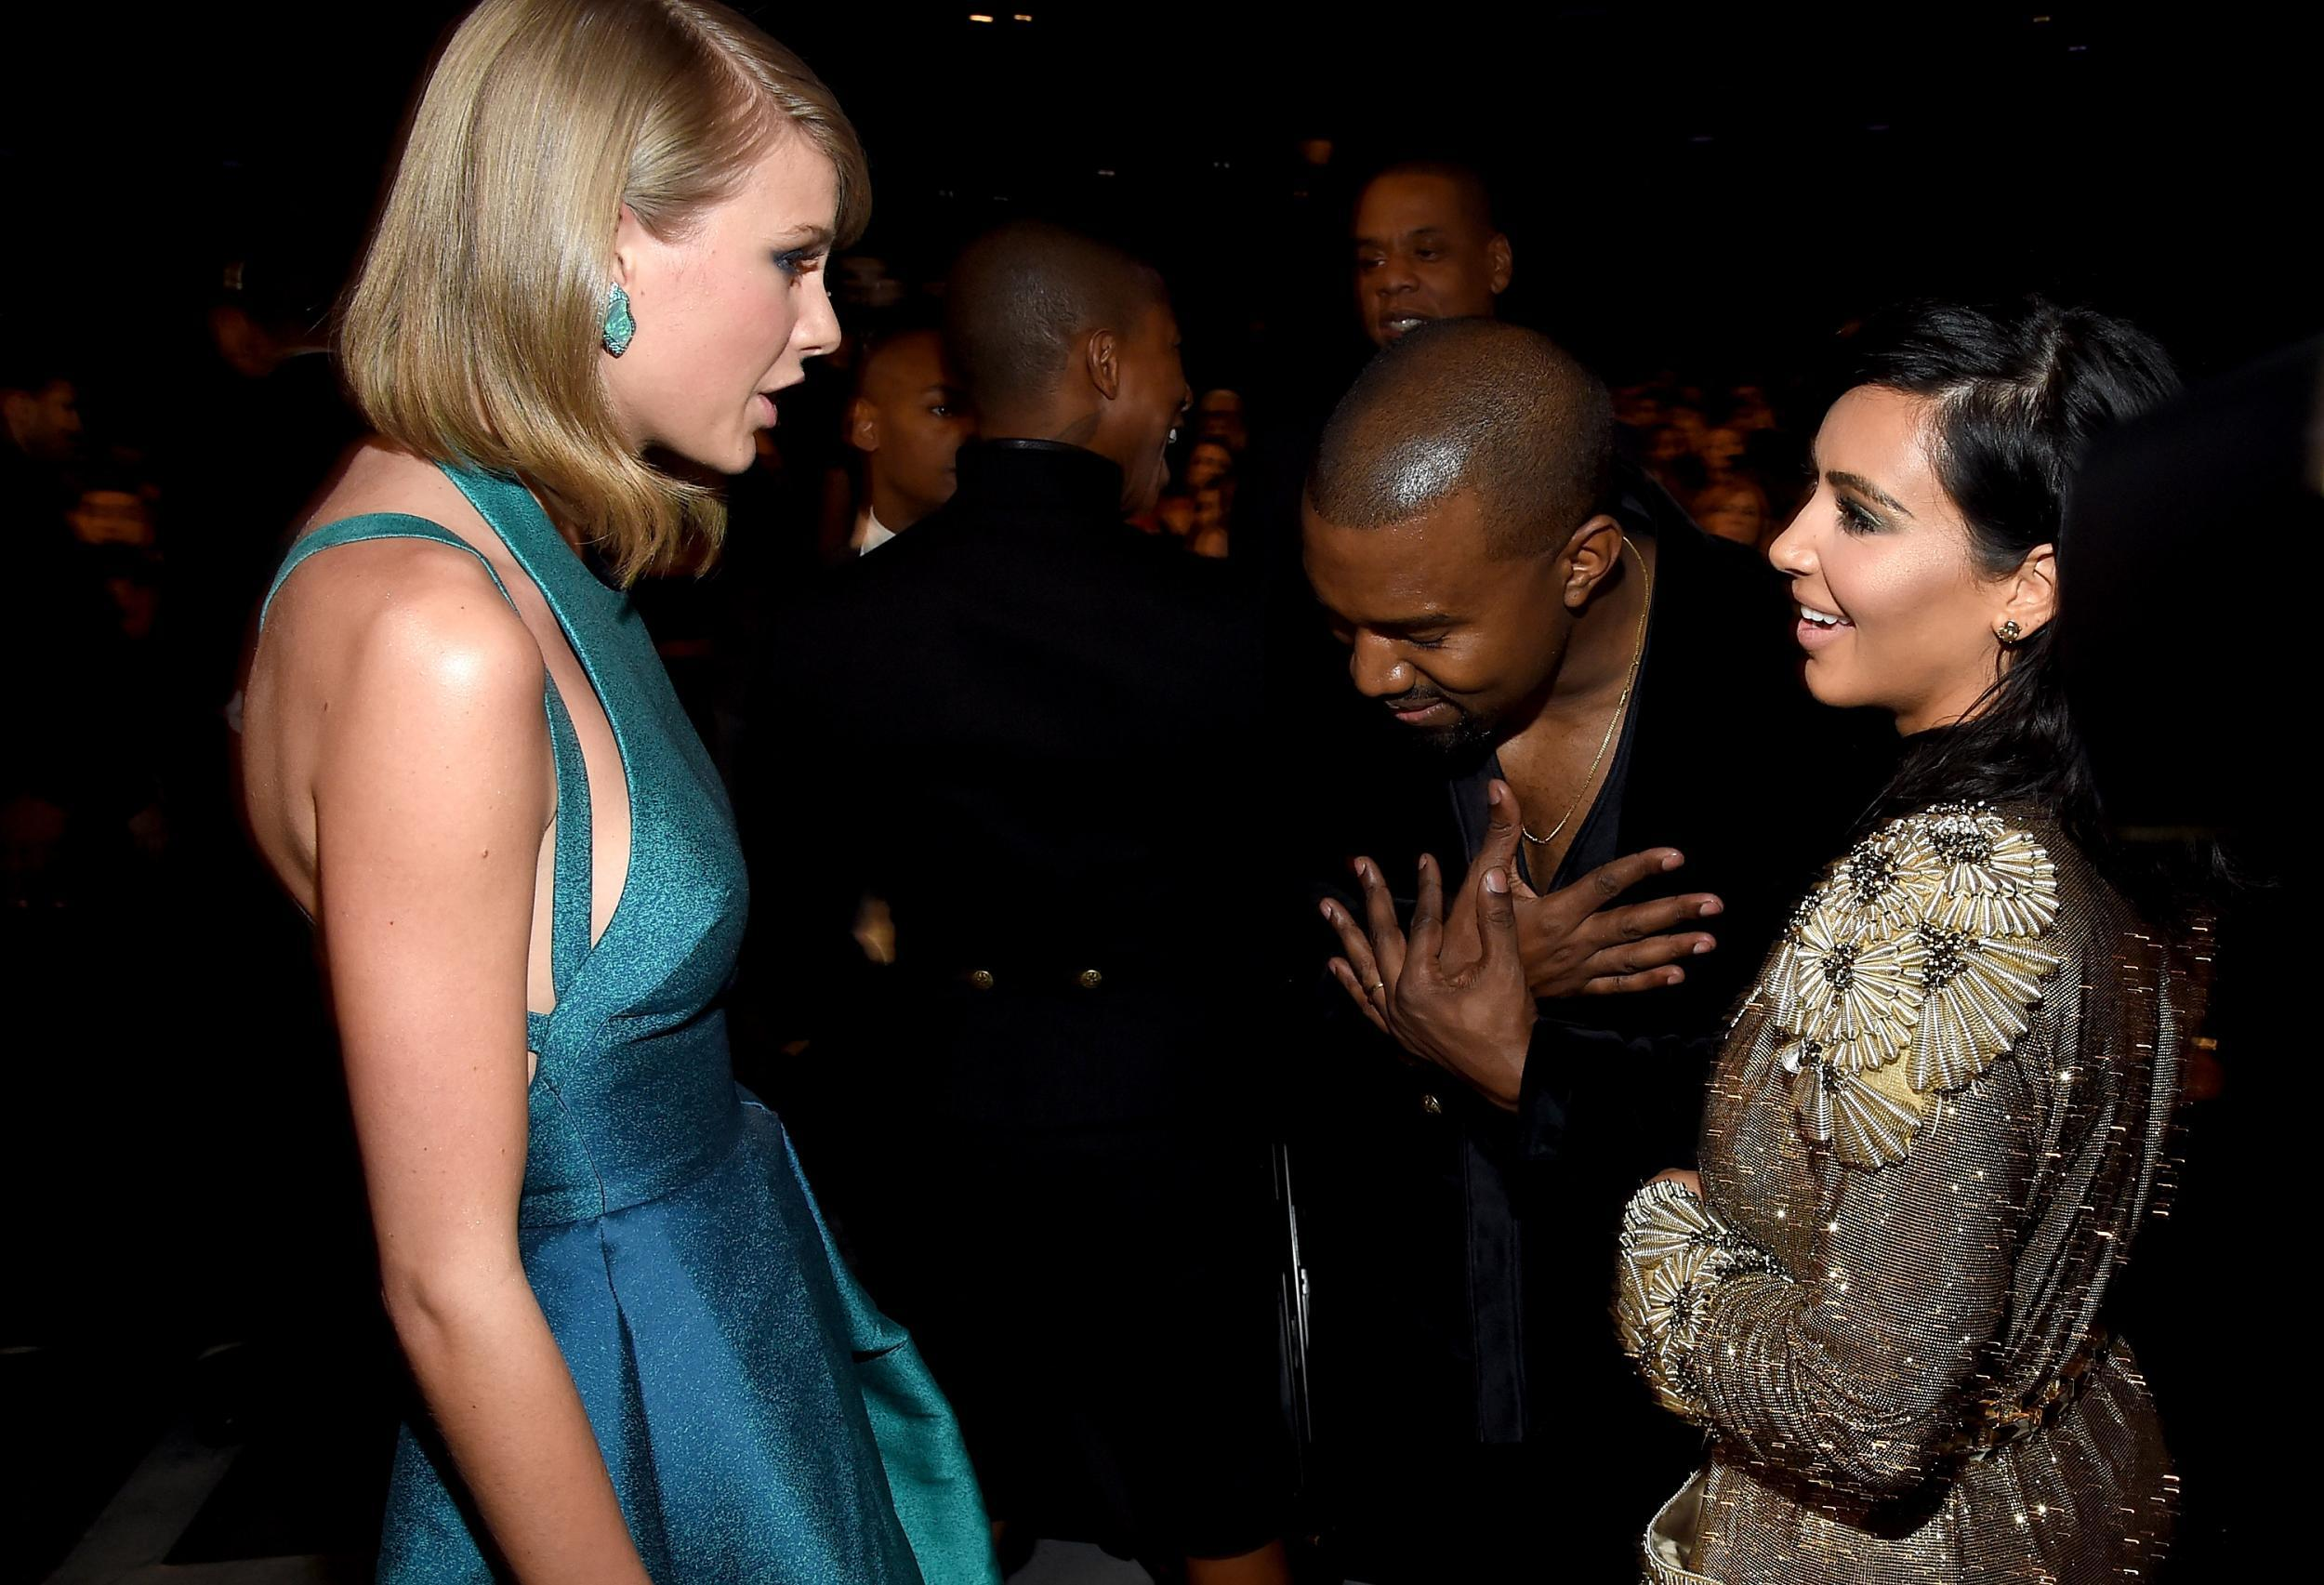 Taylor Swift Kanye West Kim Kardashian And The Impact Of Having Spats Play Out In Public The Independent The Independent